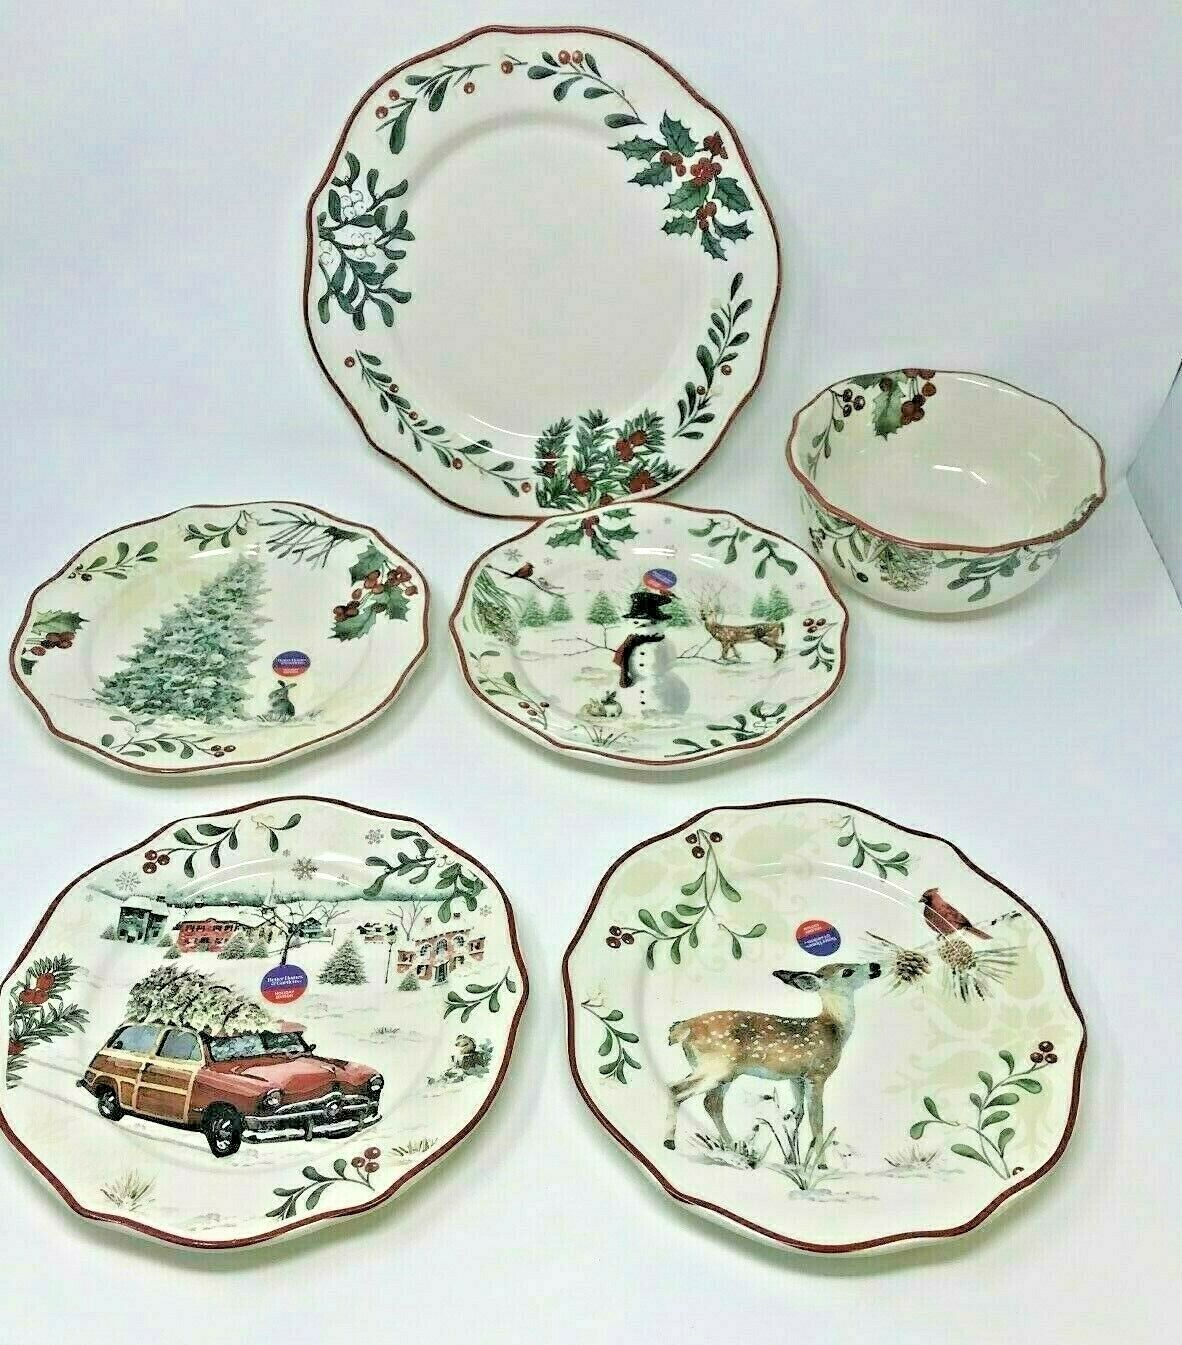 685e798154455bfc7dbed4a80dab853b - Better Homes And Gardens Heritage 12 Piece Dinnerware Set